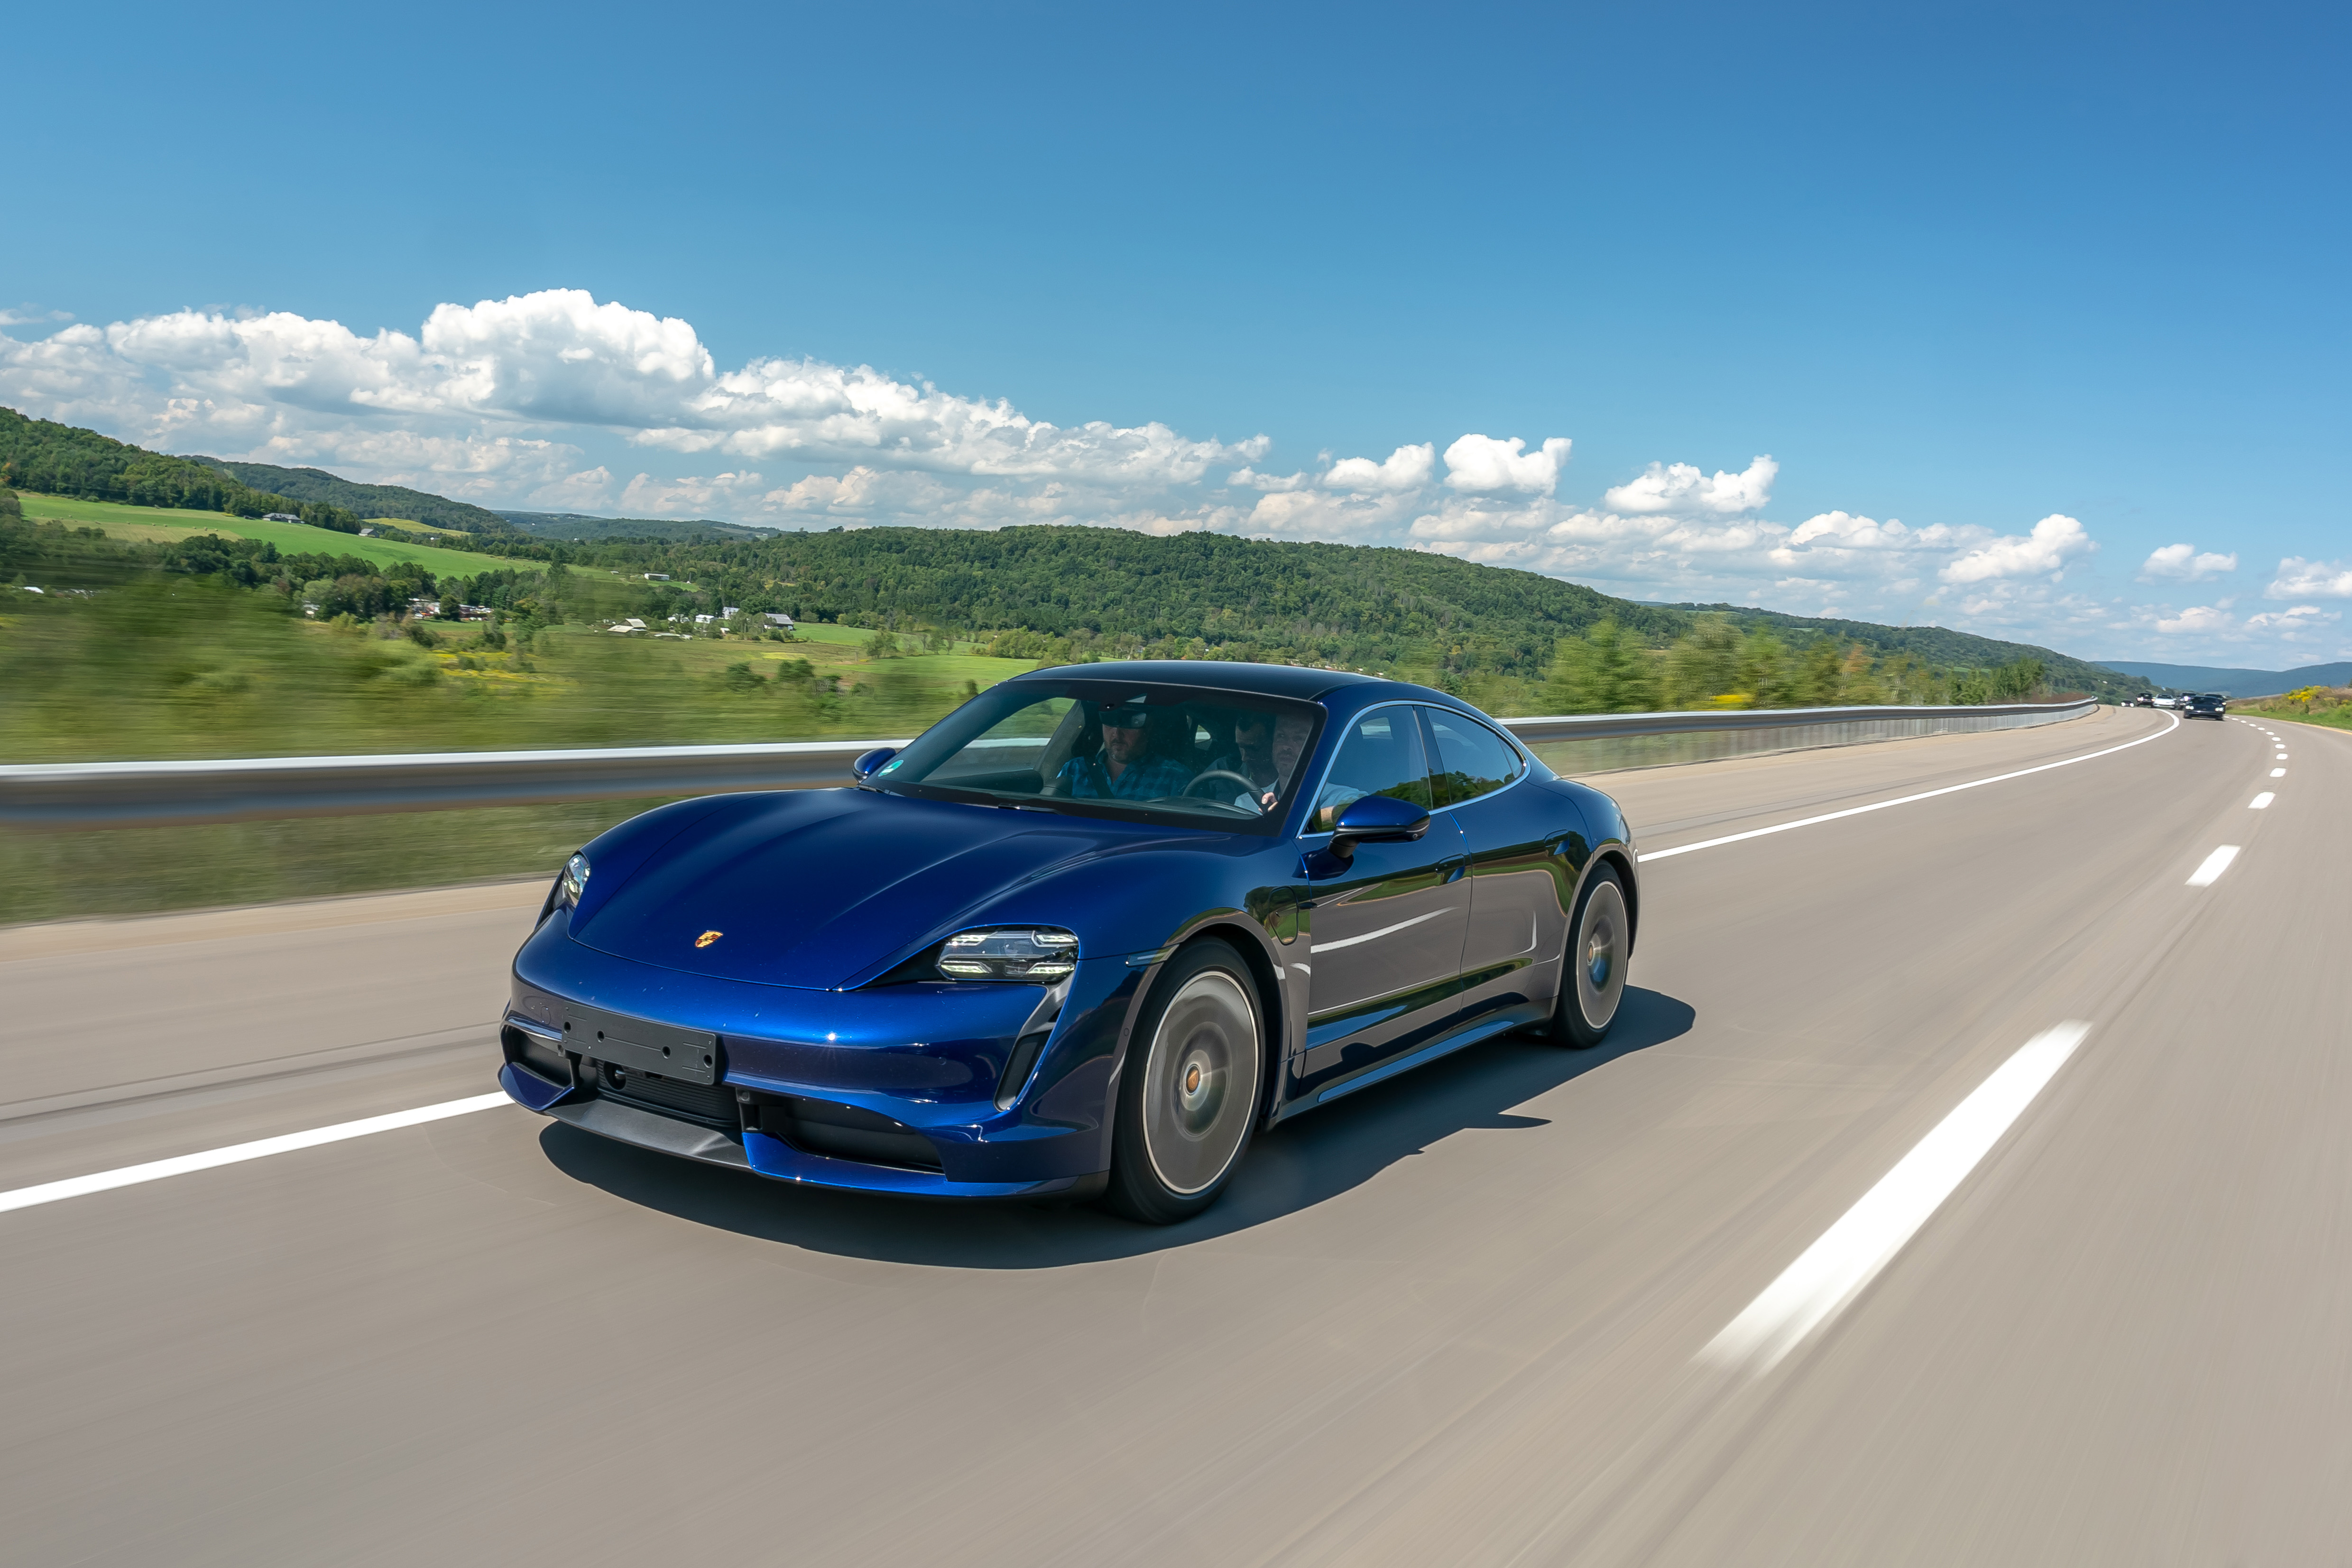 Porsche Taycan Turbo hits the road for the first time, Taycan Turbo, 2019, PCNA